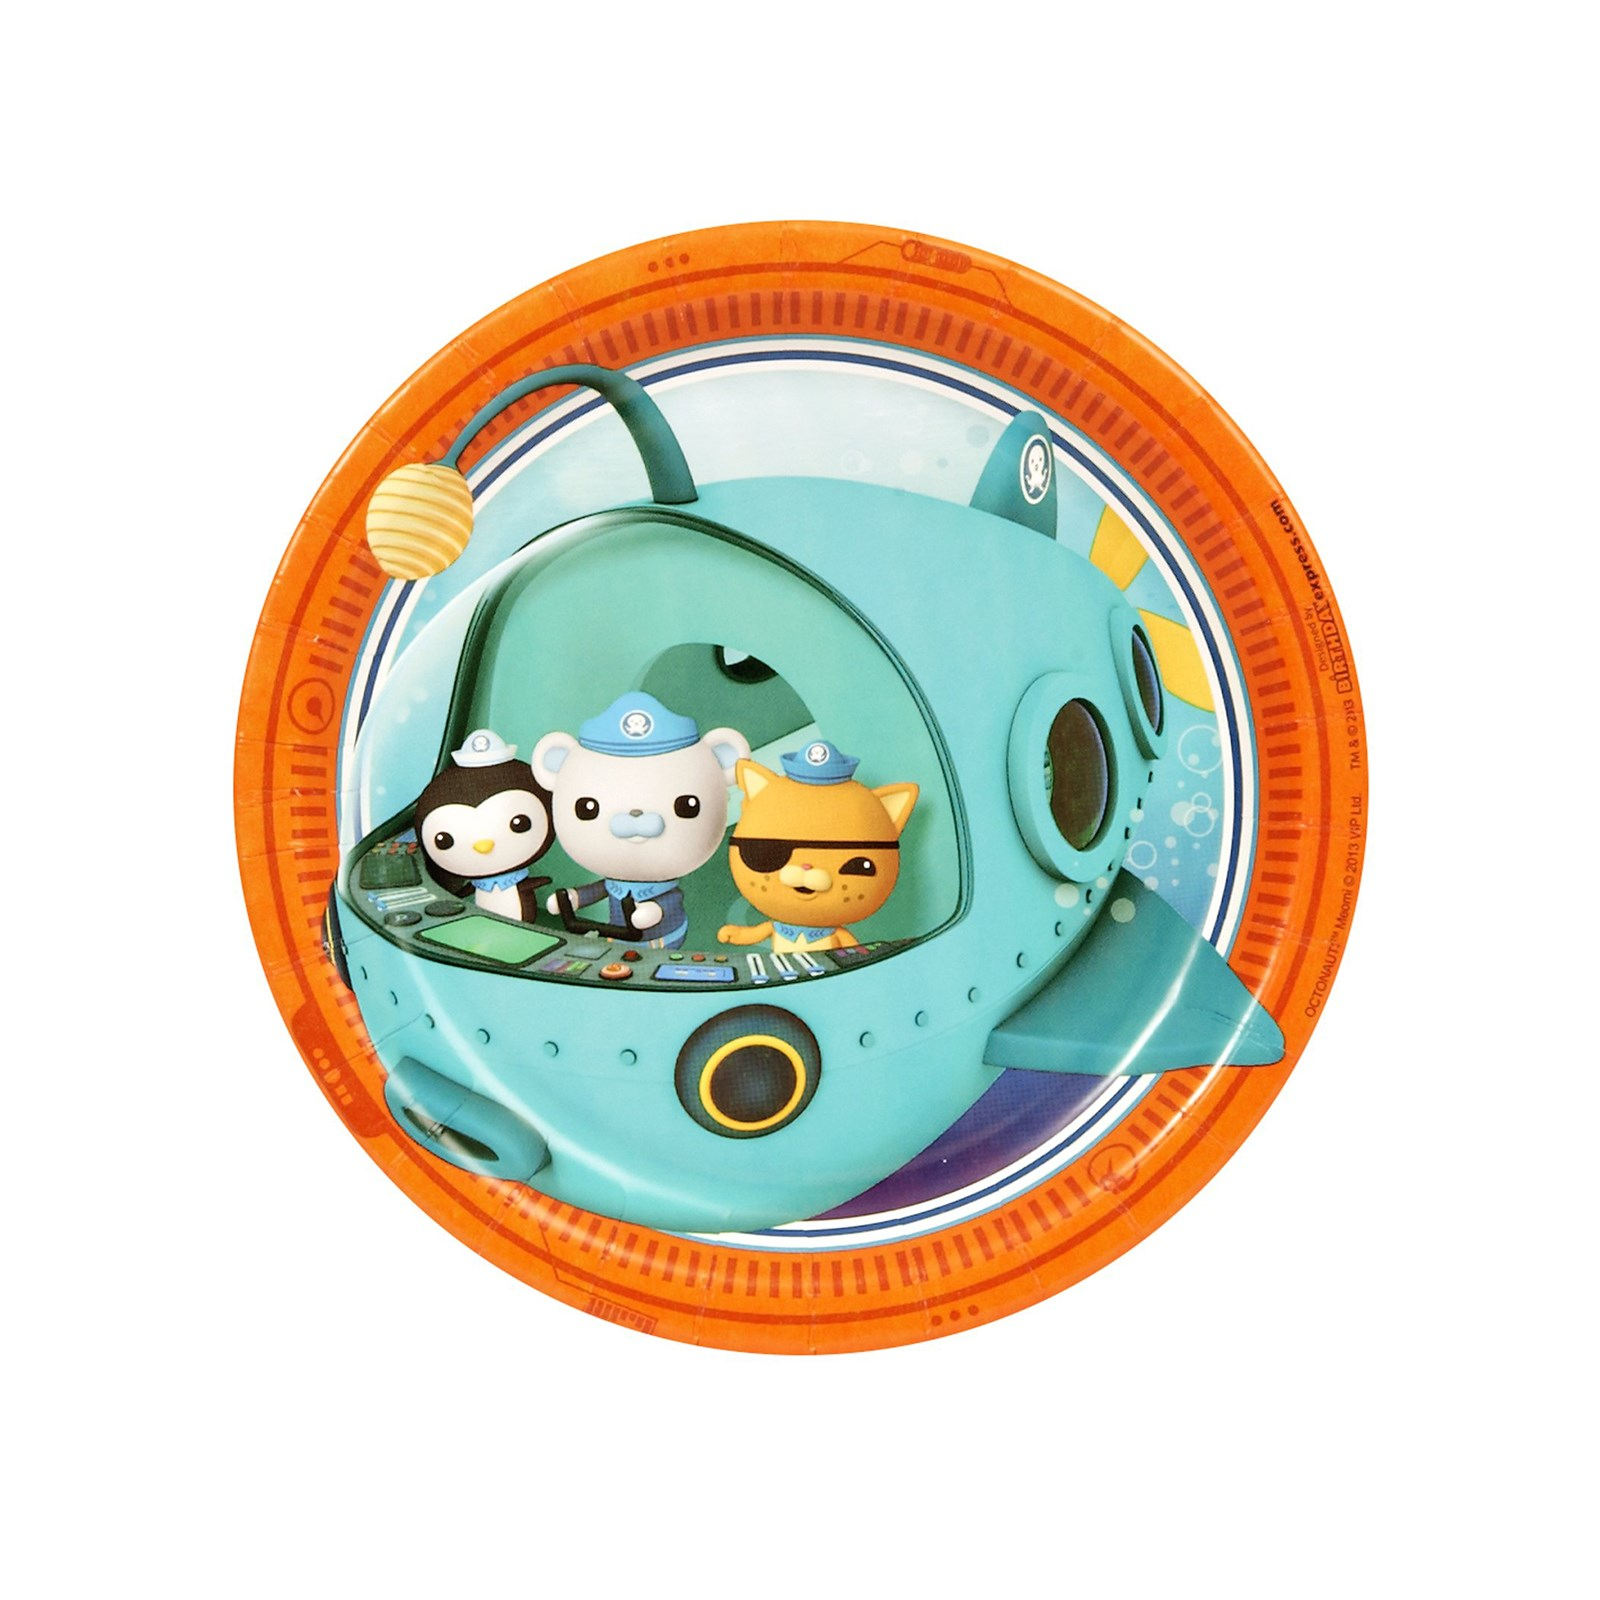 Image of The Octonauts Dessert Plates